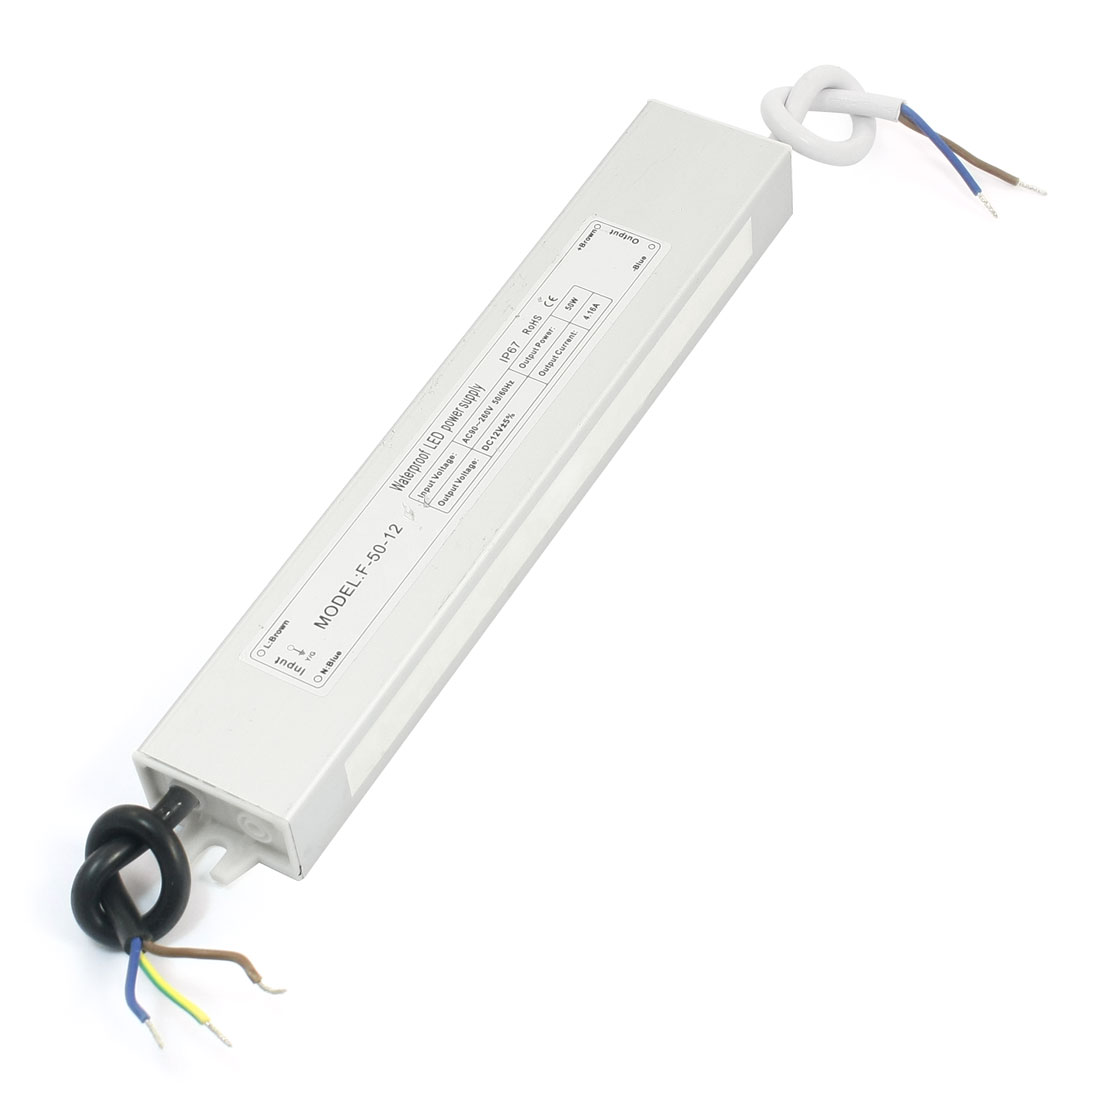 50W LED Strip Light Lamp Power Supply Driver IP67 AC 90-260V 50/60HZ